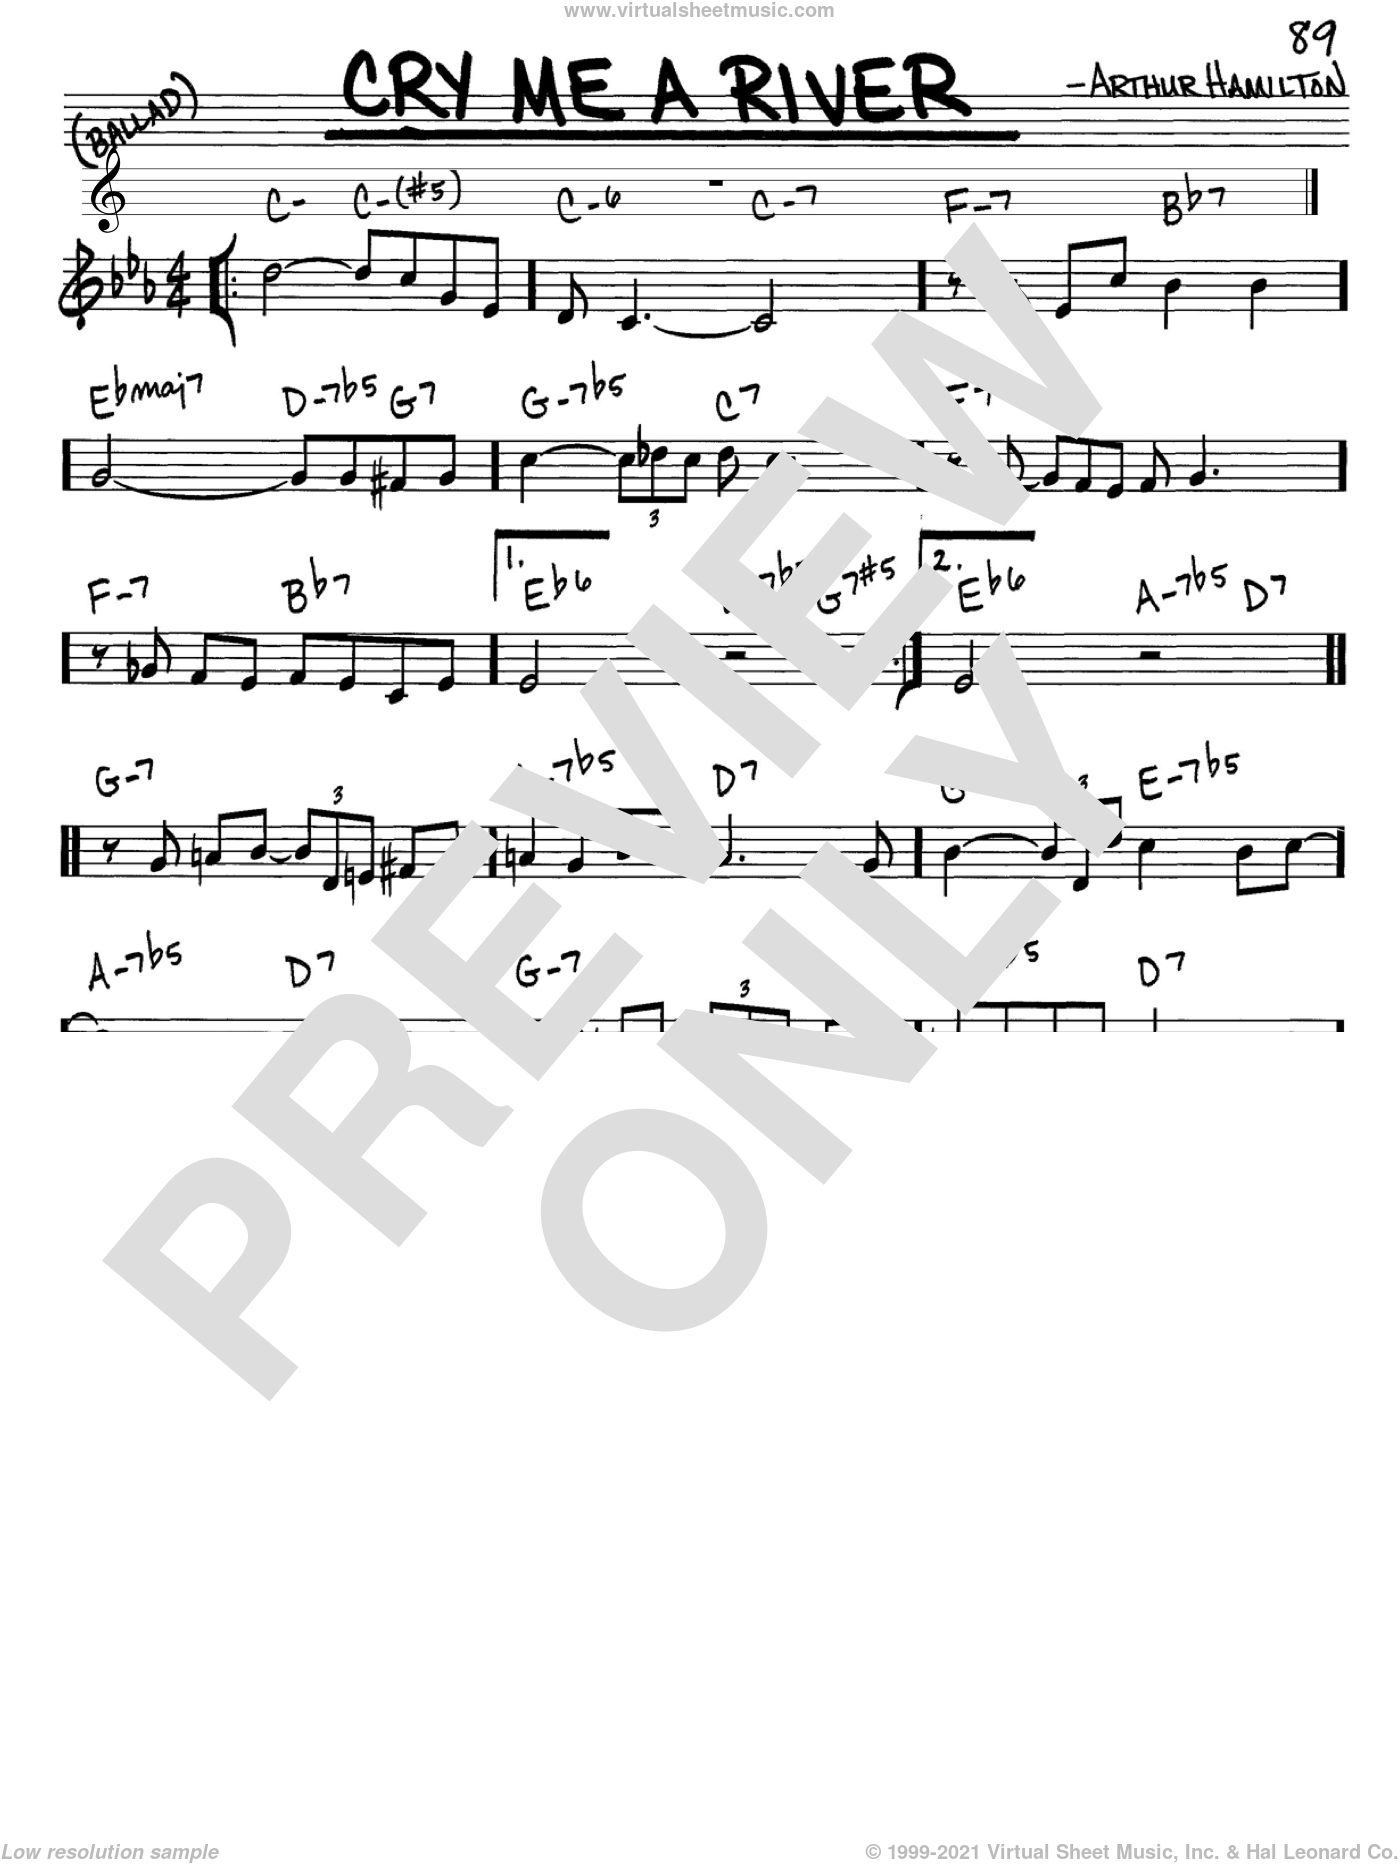 Cry Me A River sheet music for voice and other instruments (C) by Arthur Hamilton